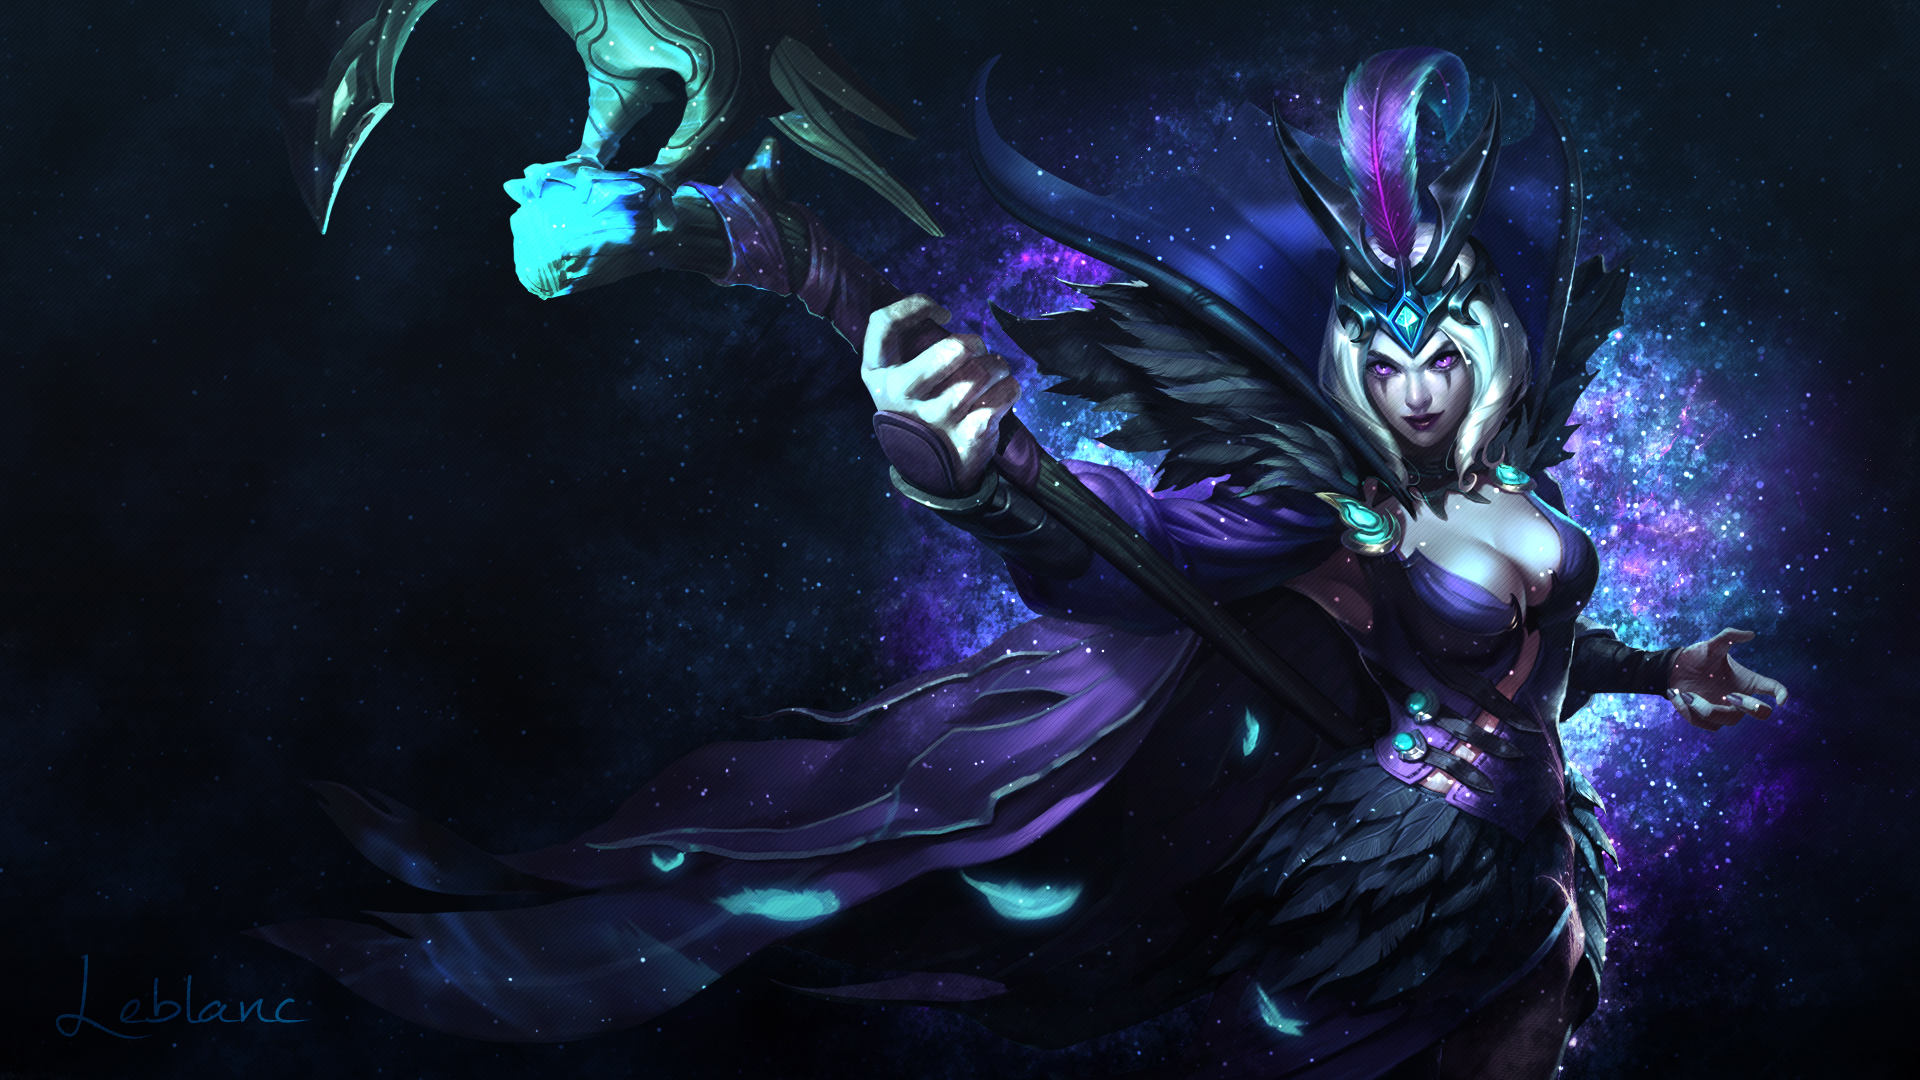 leblanc chat When leblanc drops below 40% health, she becomes invisible for 1 second and creates a mirror image that deals no damage and lasts for up to 8 seconds.